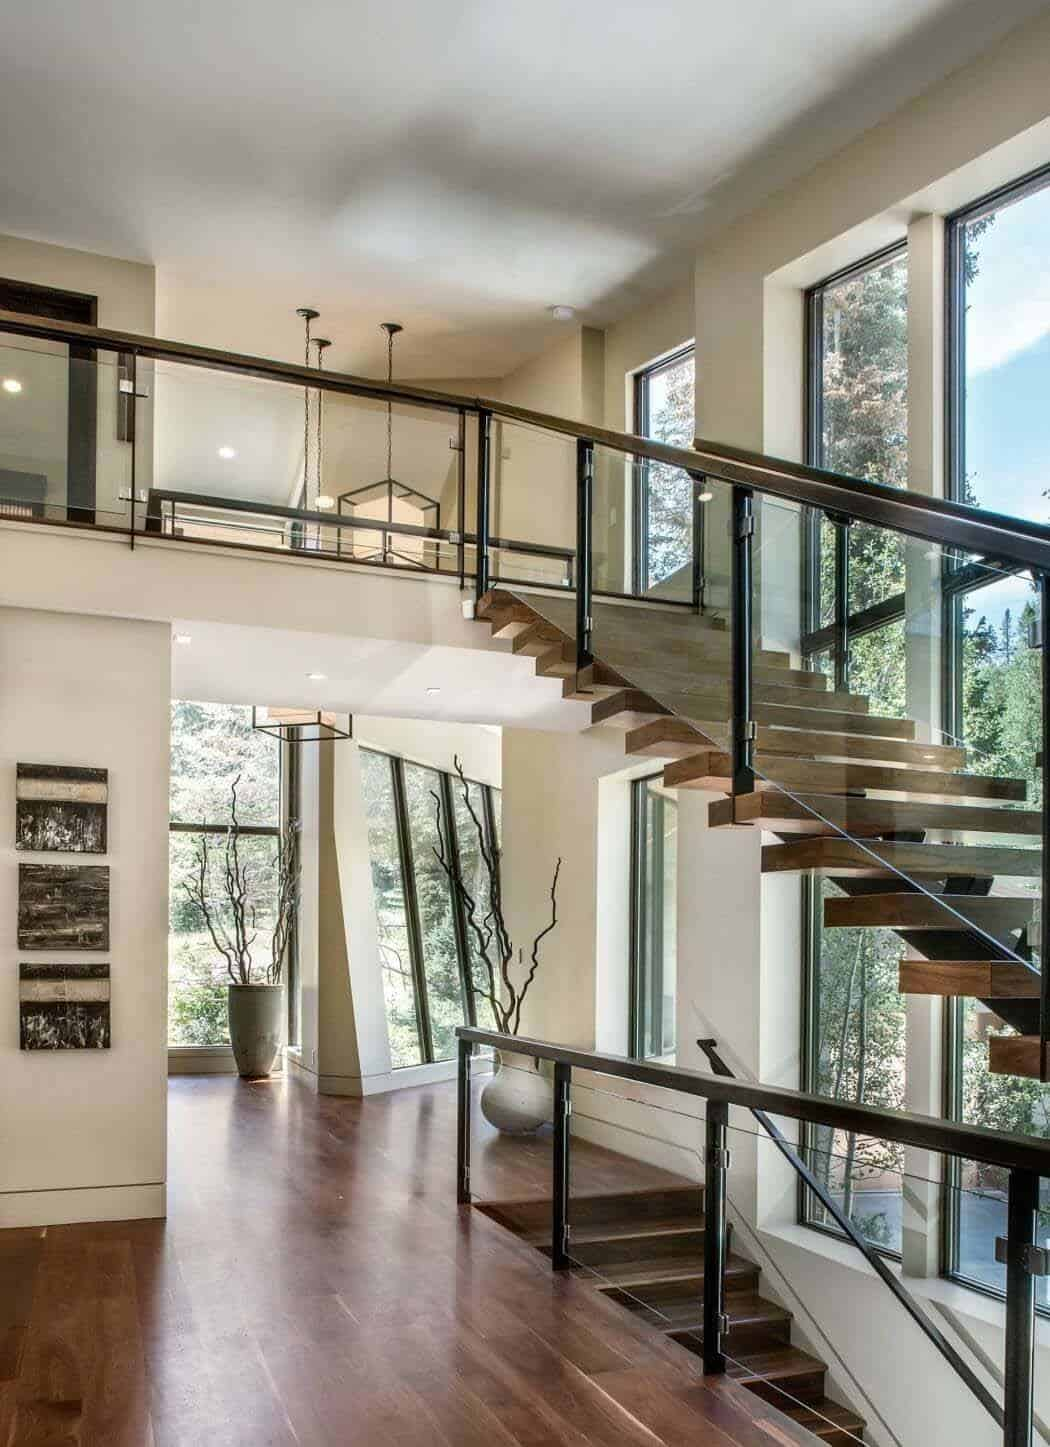 Contemporary Mountain Home-LMK Interior Design-10-1 Kindesign